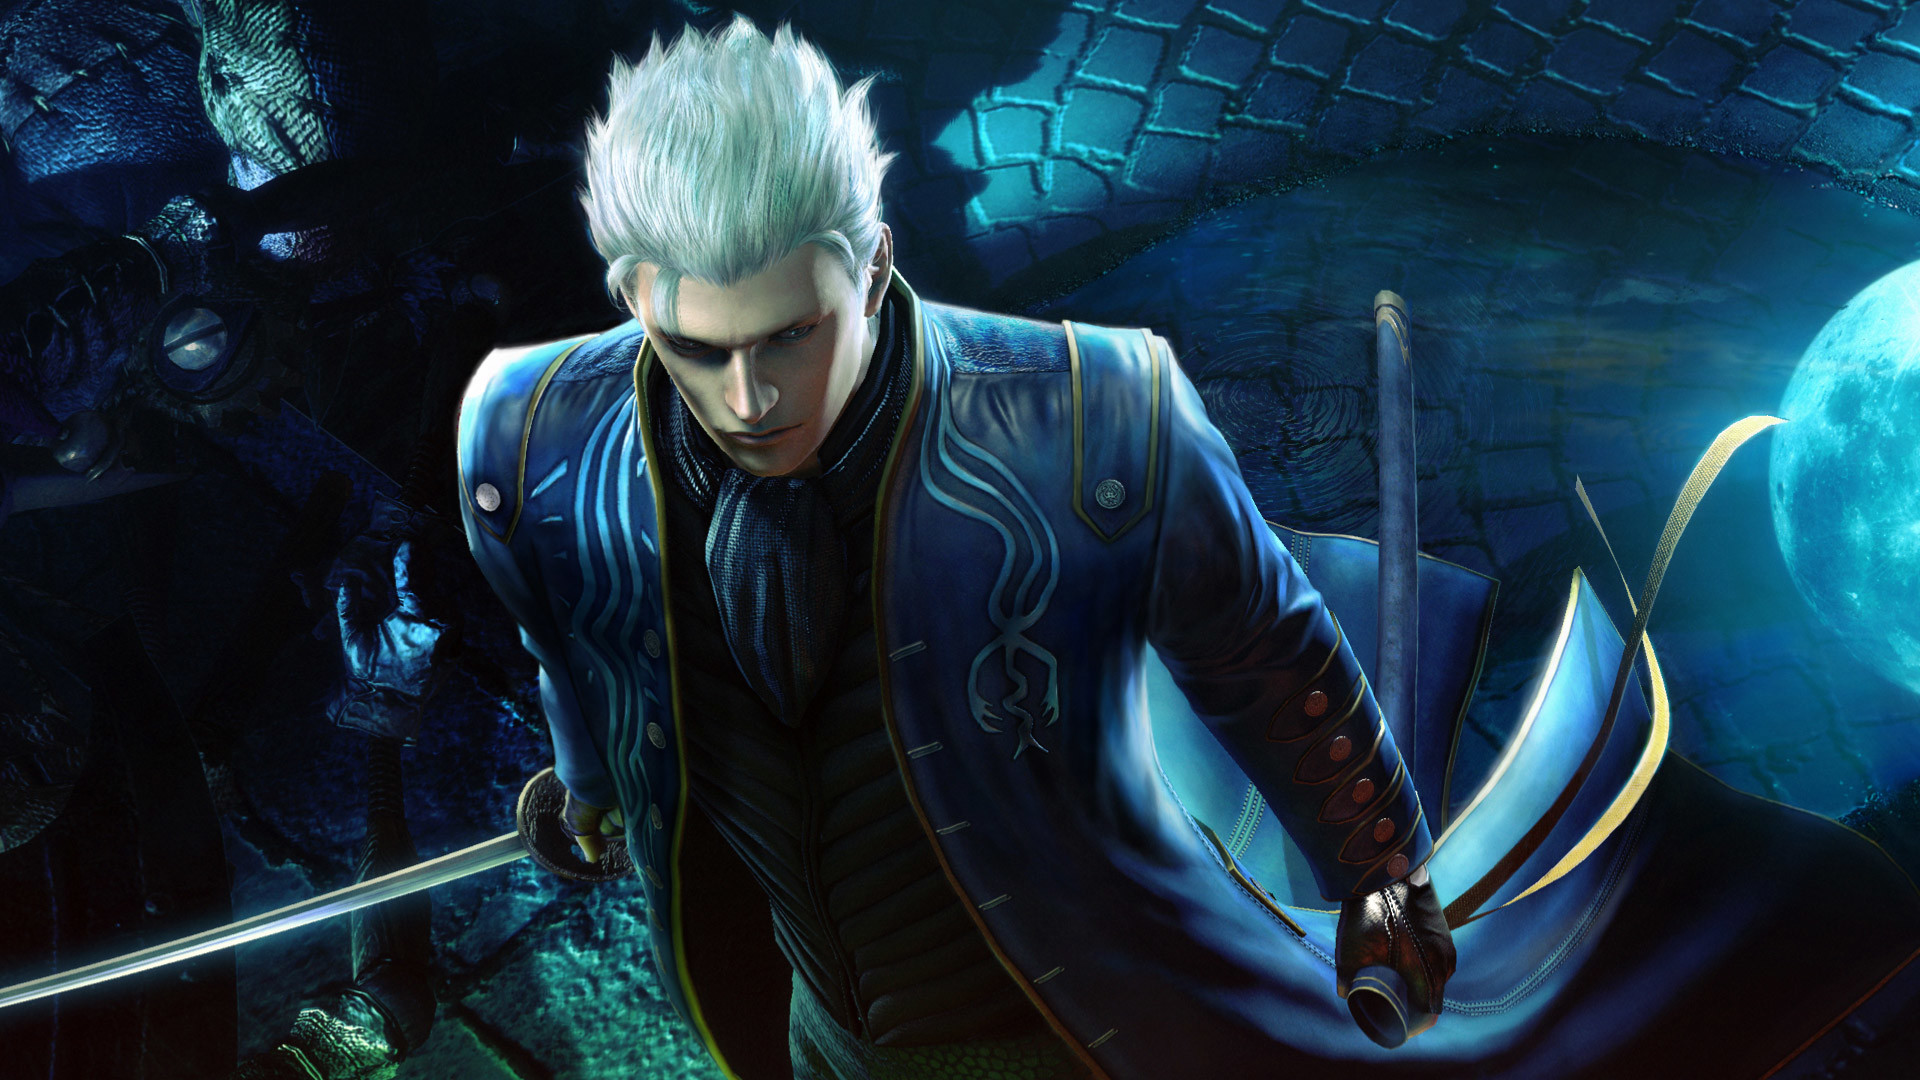 Devil May Cry 4 Wallpaper (69+ images)